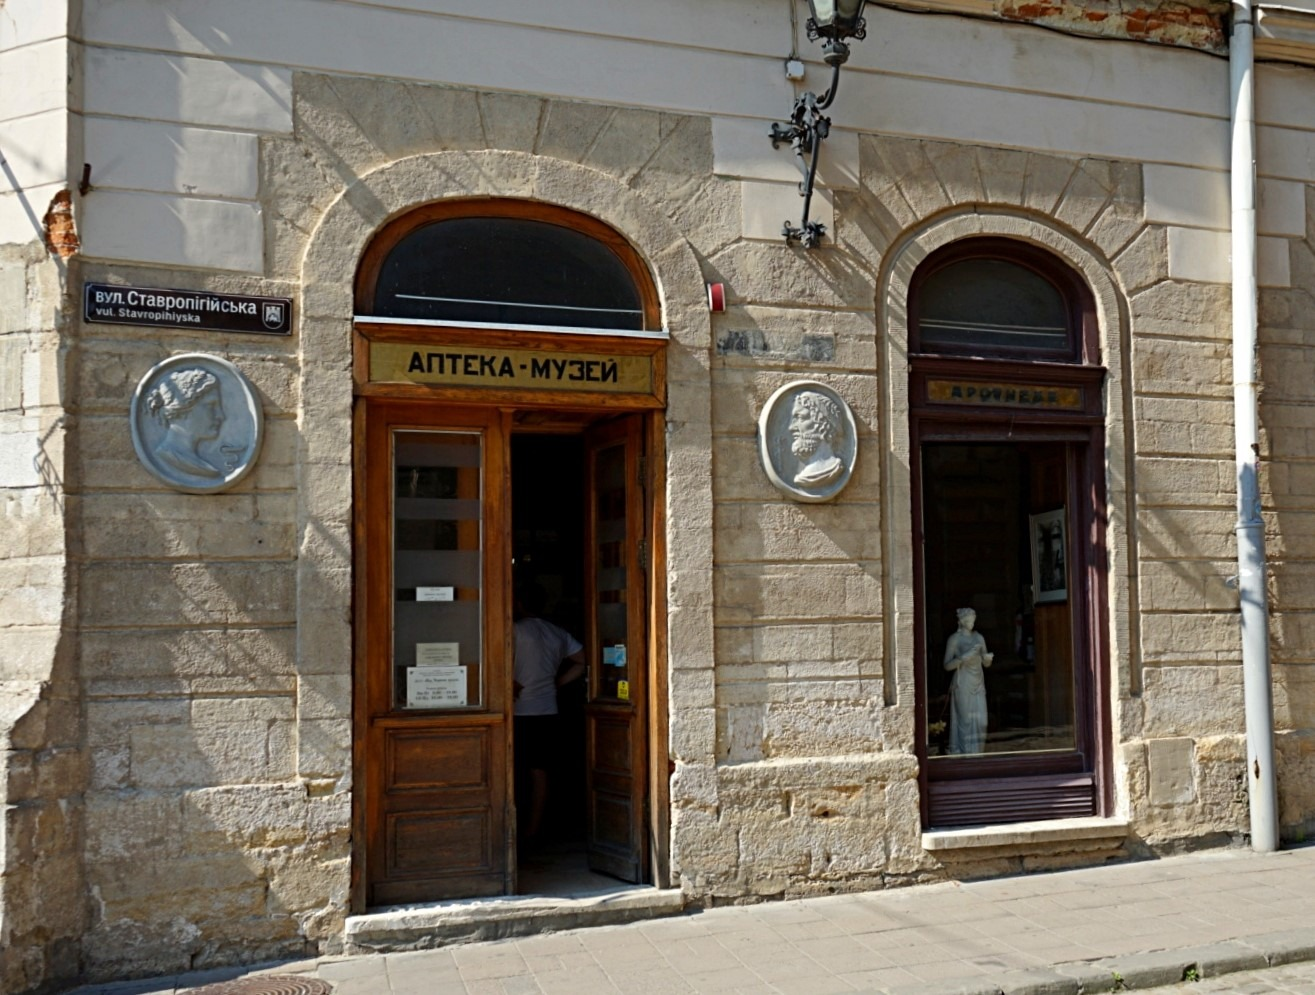 The entrance to the Pharmacy Museum in Lviv